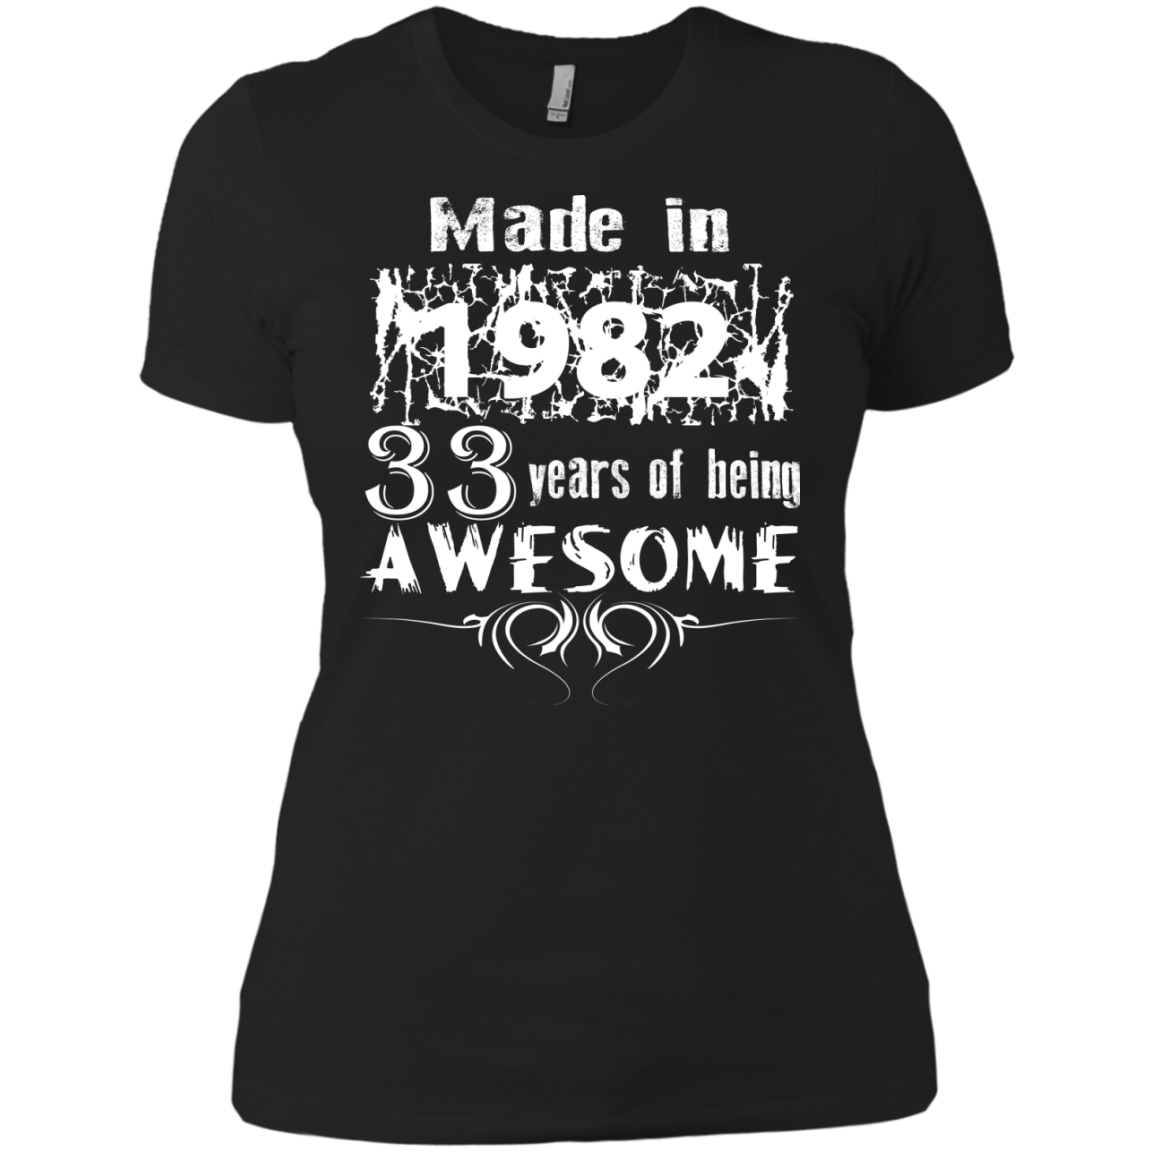 Made in 1982 33 Years of being AWESOME - The Sun Cat